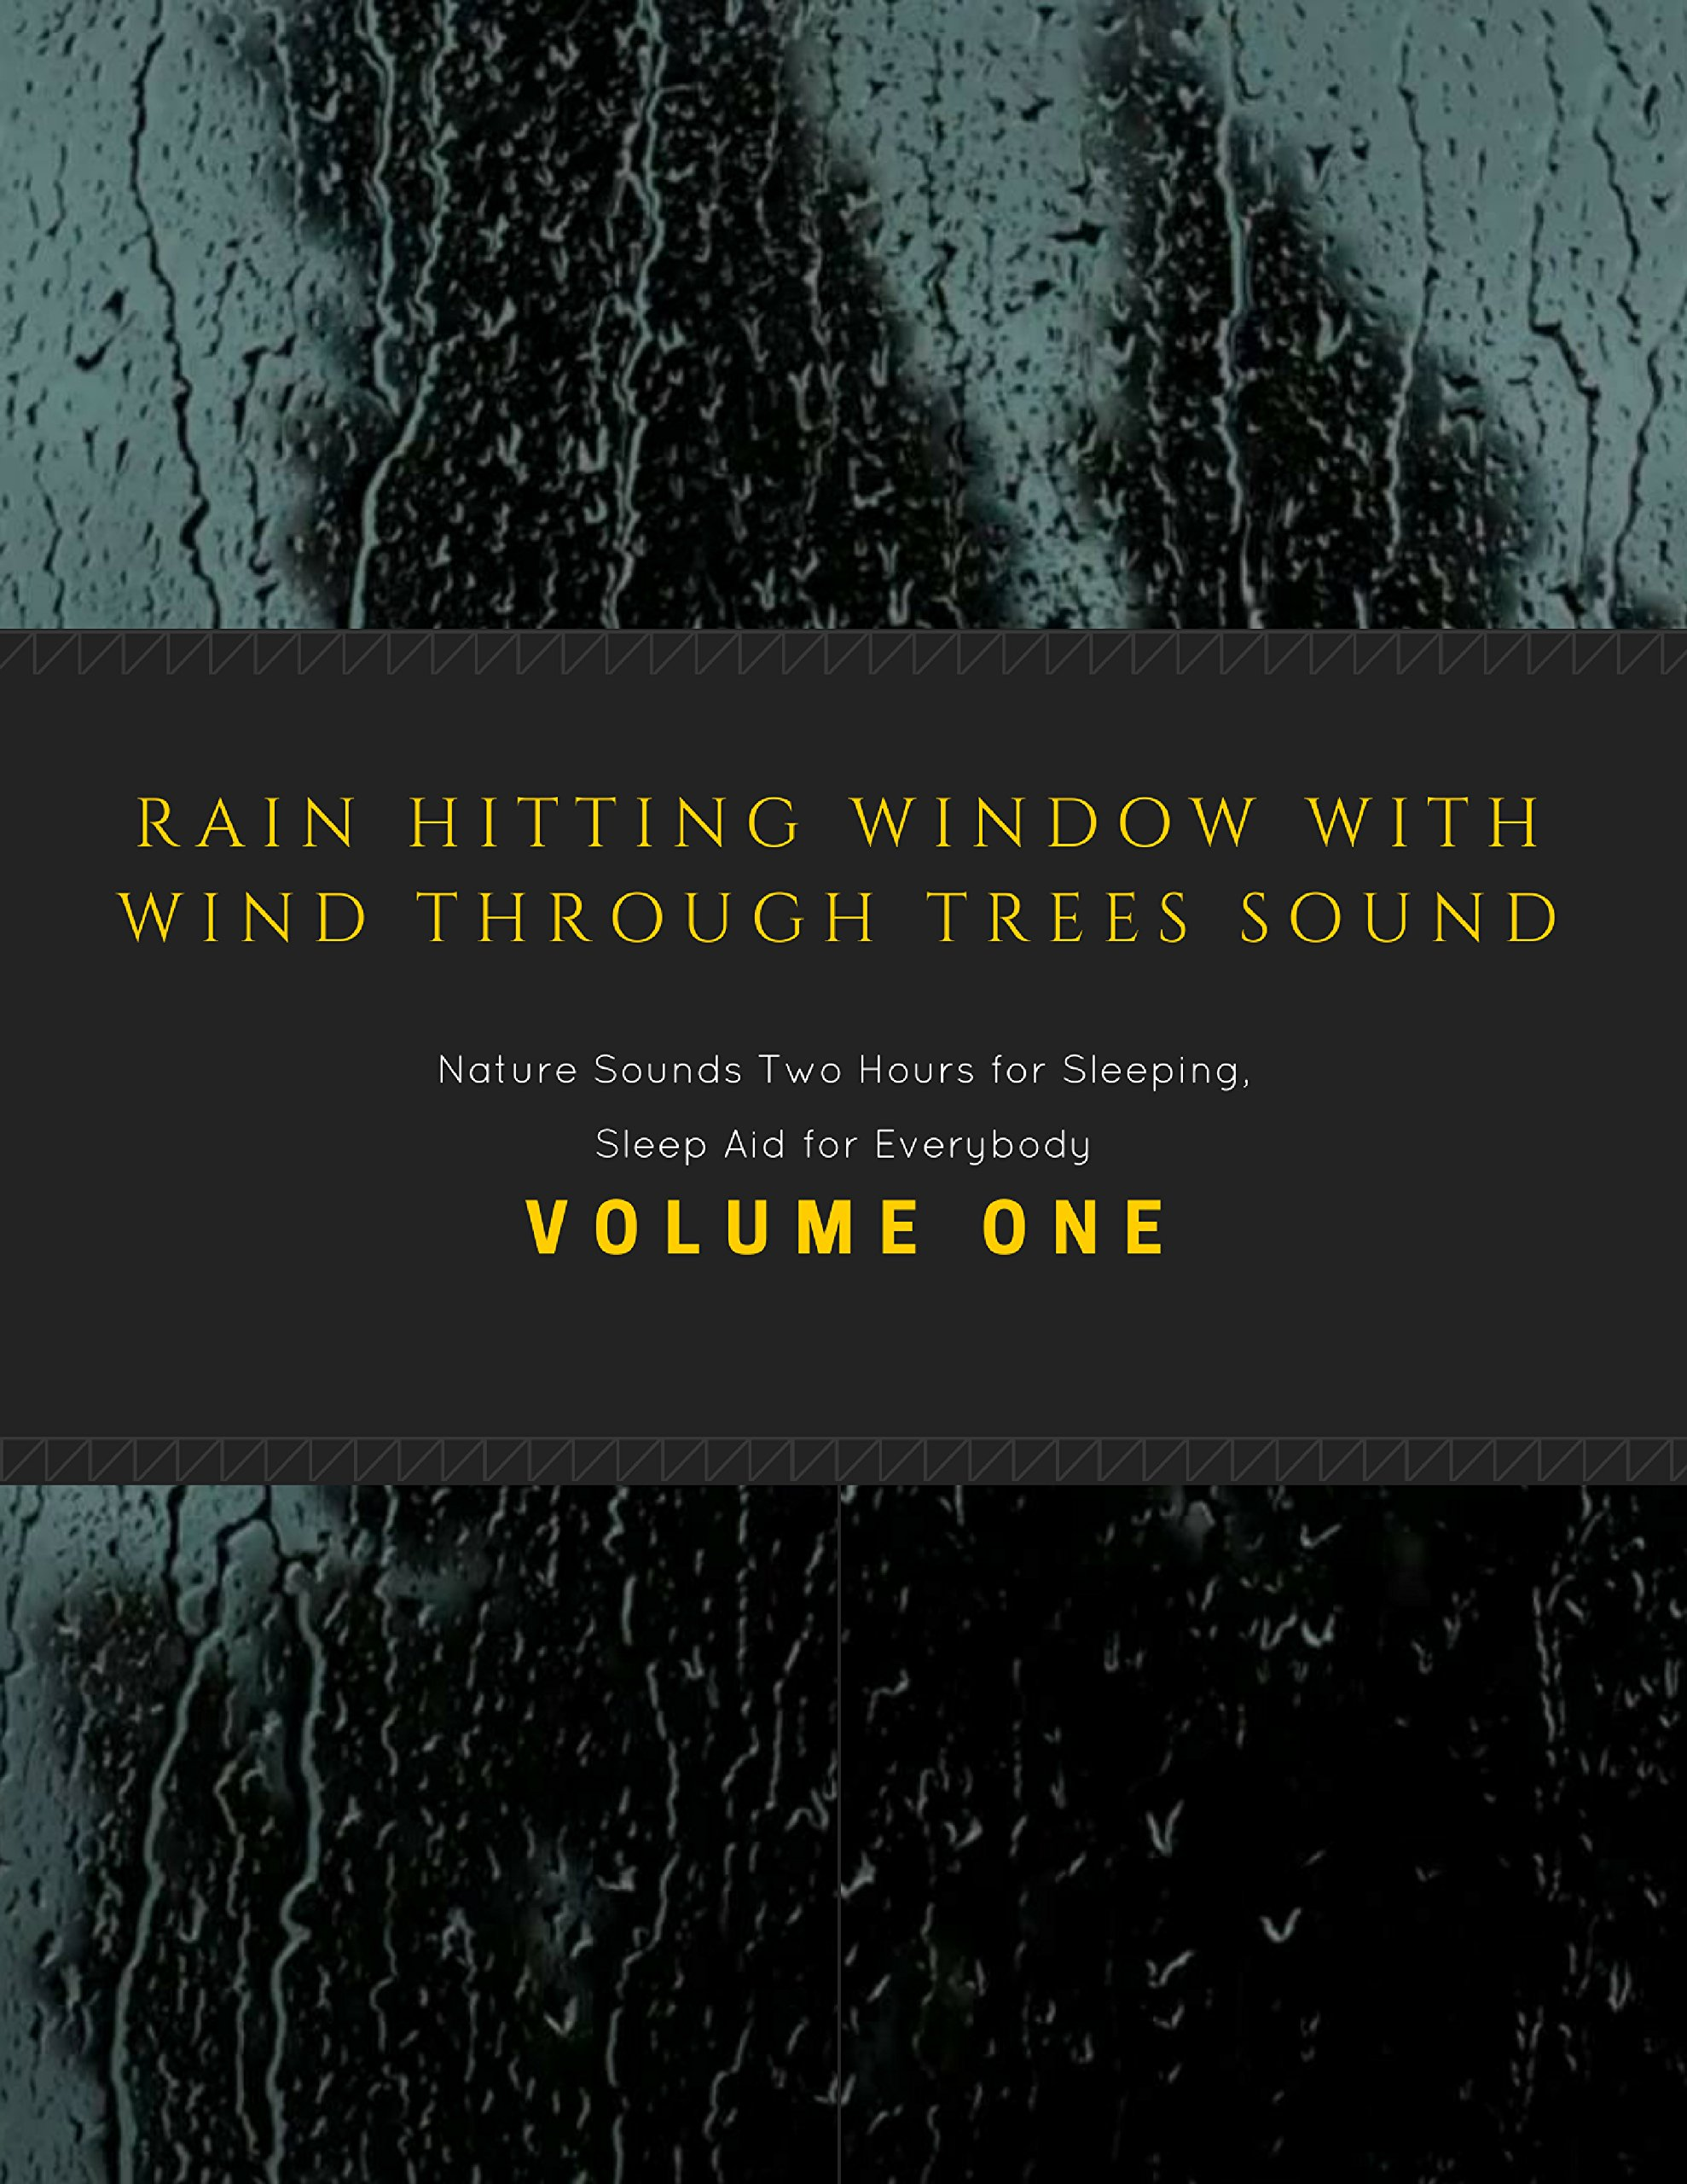 Rain Hitting Window with Wind Through Trees Sound